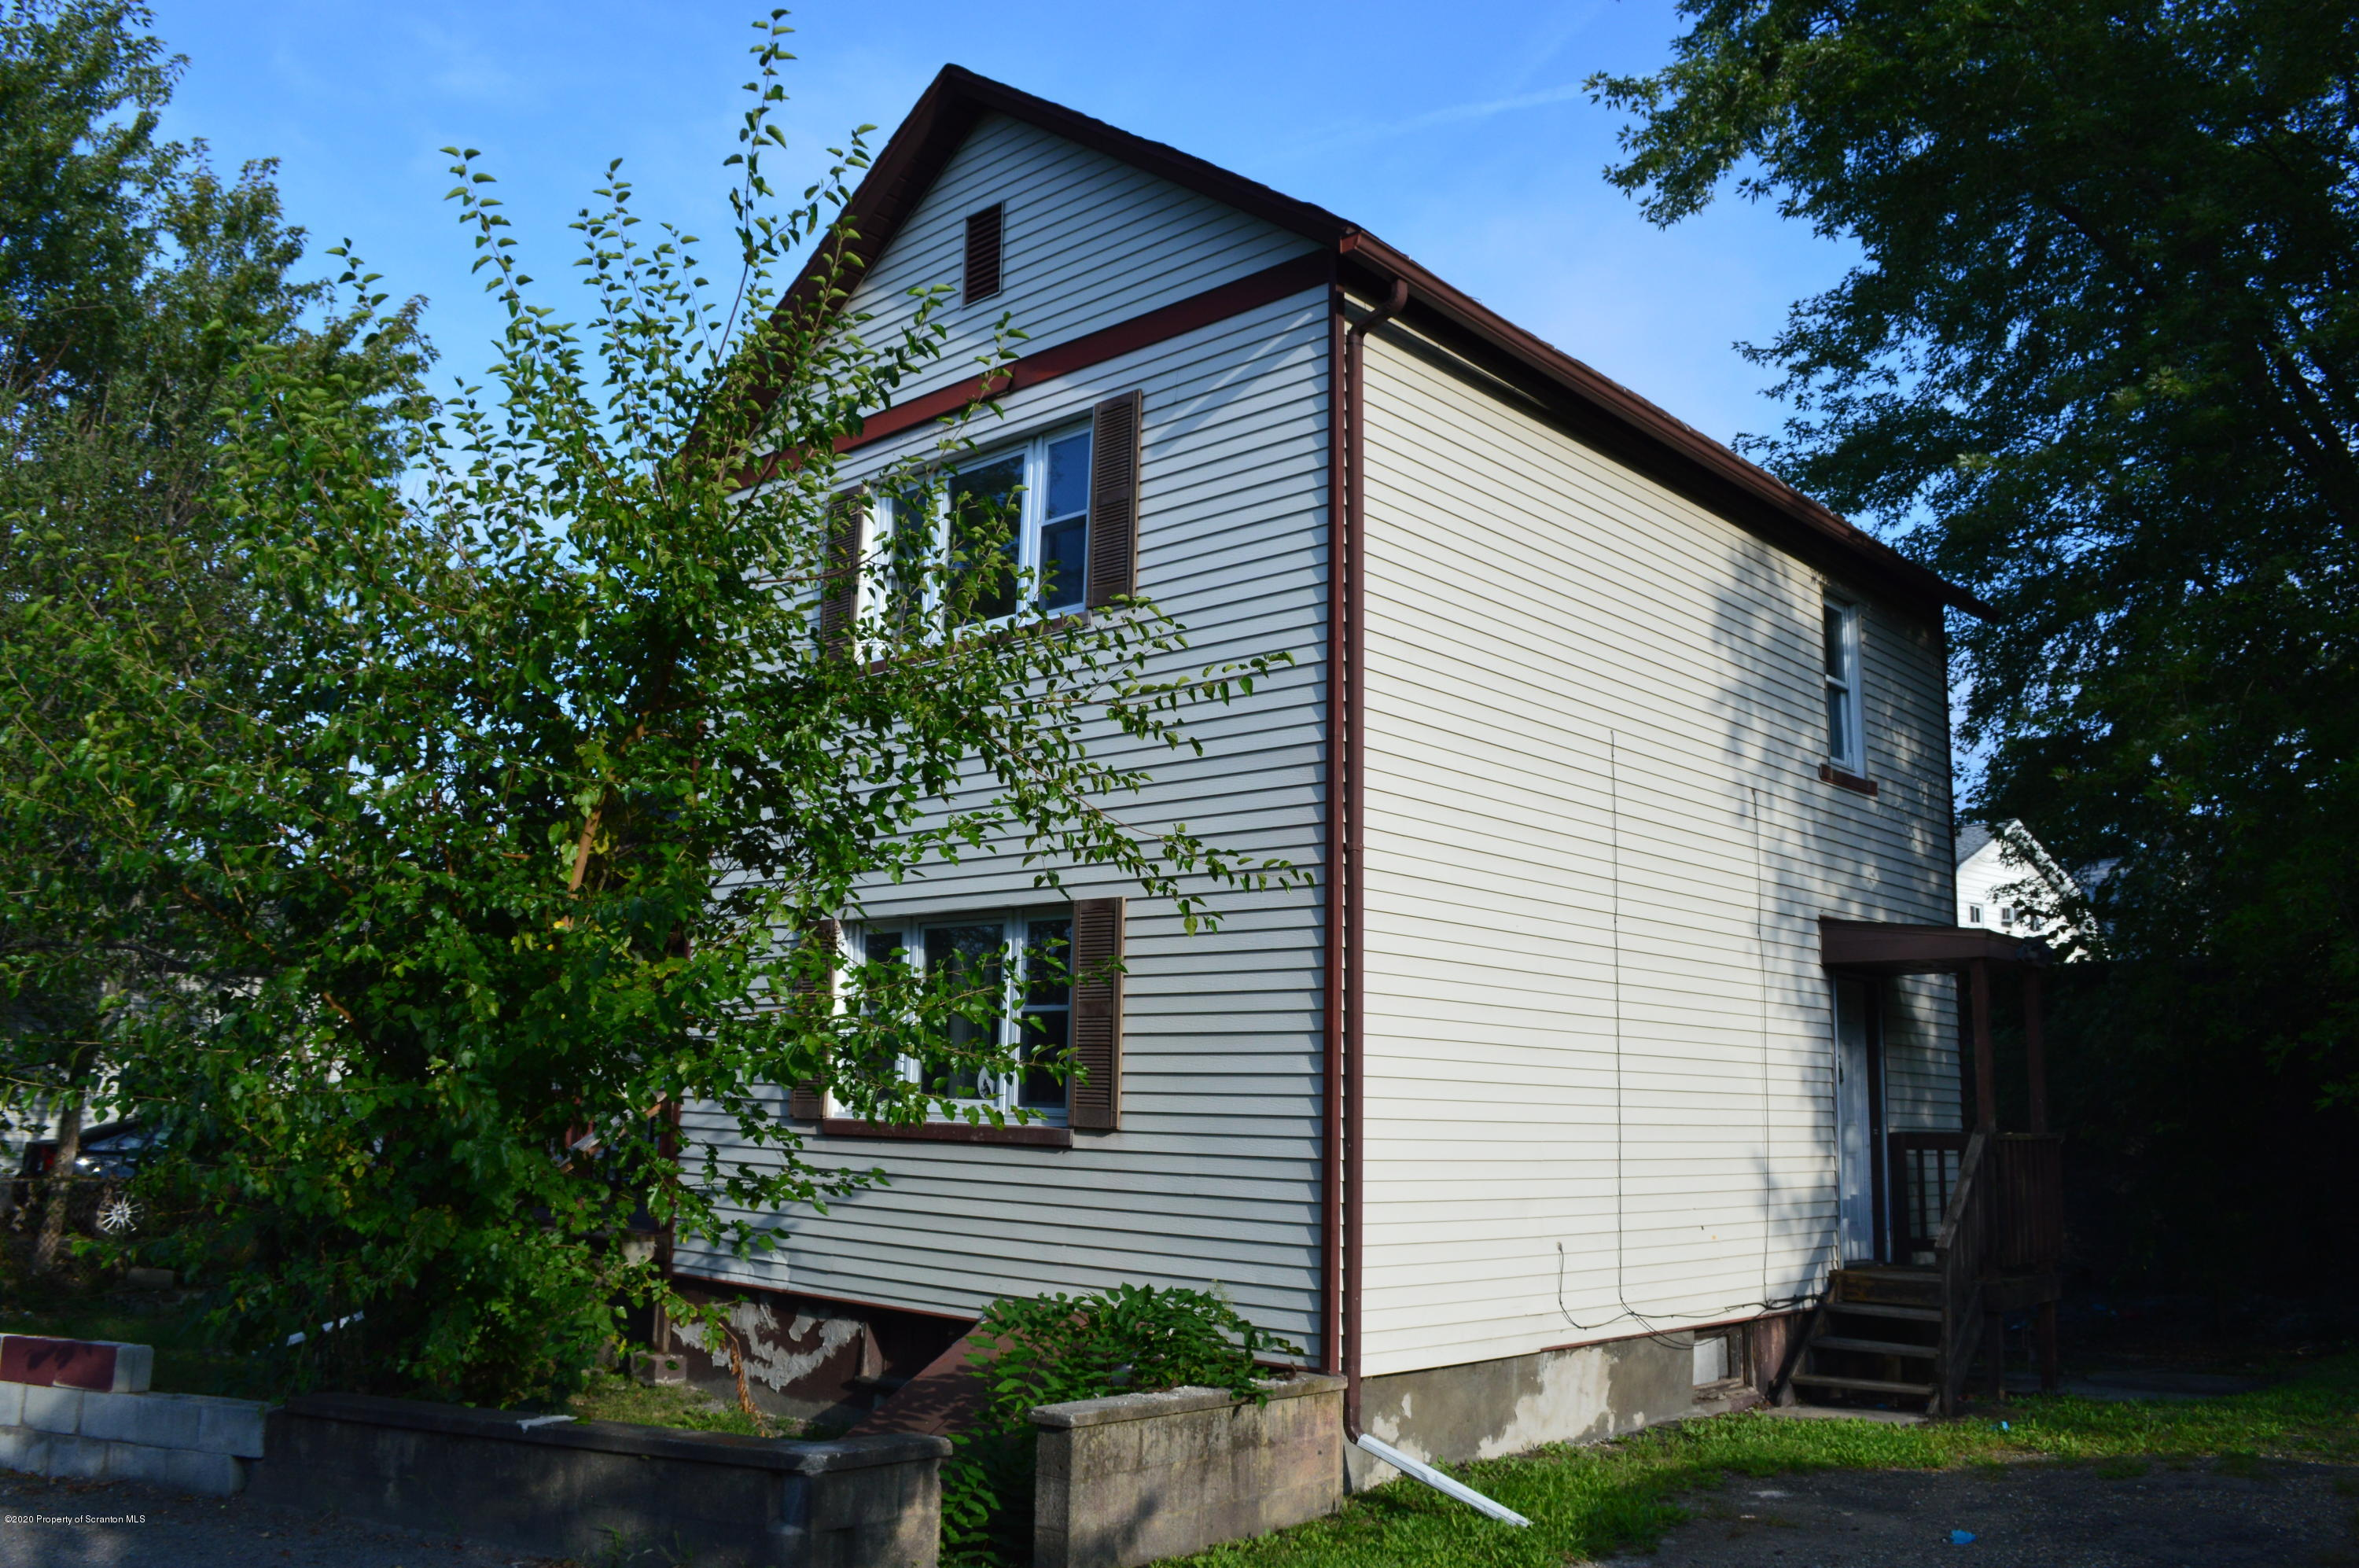 914 Rear Main St, Old Forge, Pennsylvania 18518, 3 Bedrooms Bedrooms, 6 Rooms Rooms,1 BathroomBathrooms,Single Family,For Sale,Rear Main,20-3790